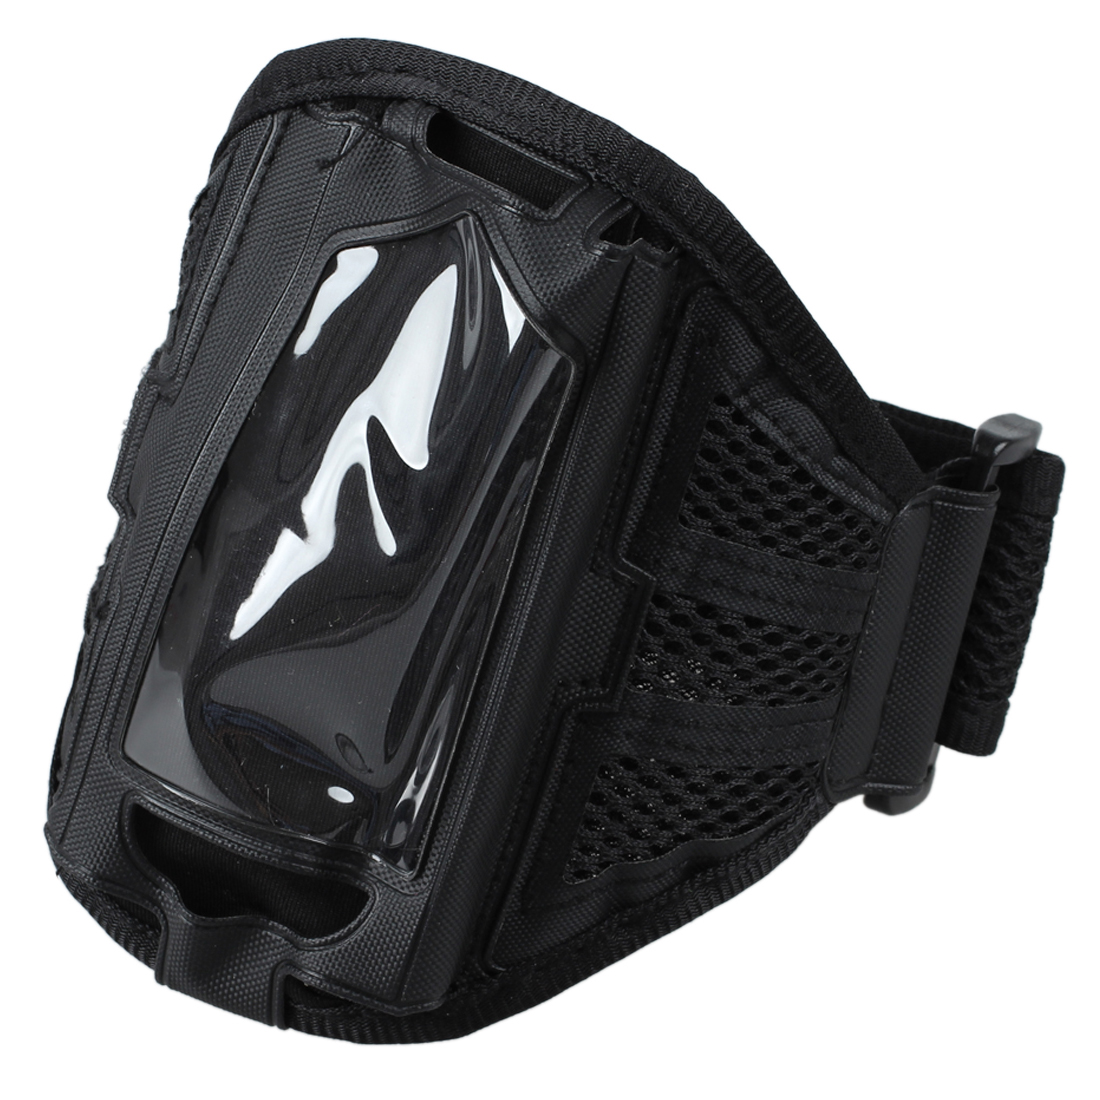 SODIAL Sports Armband Arm band Compatible With Apple iPhone 4 4G iPhone 4S - AT&T, Sprint, Version 16GB 32GB 64GB